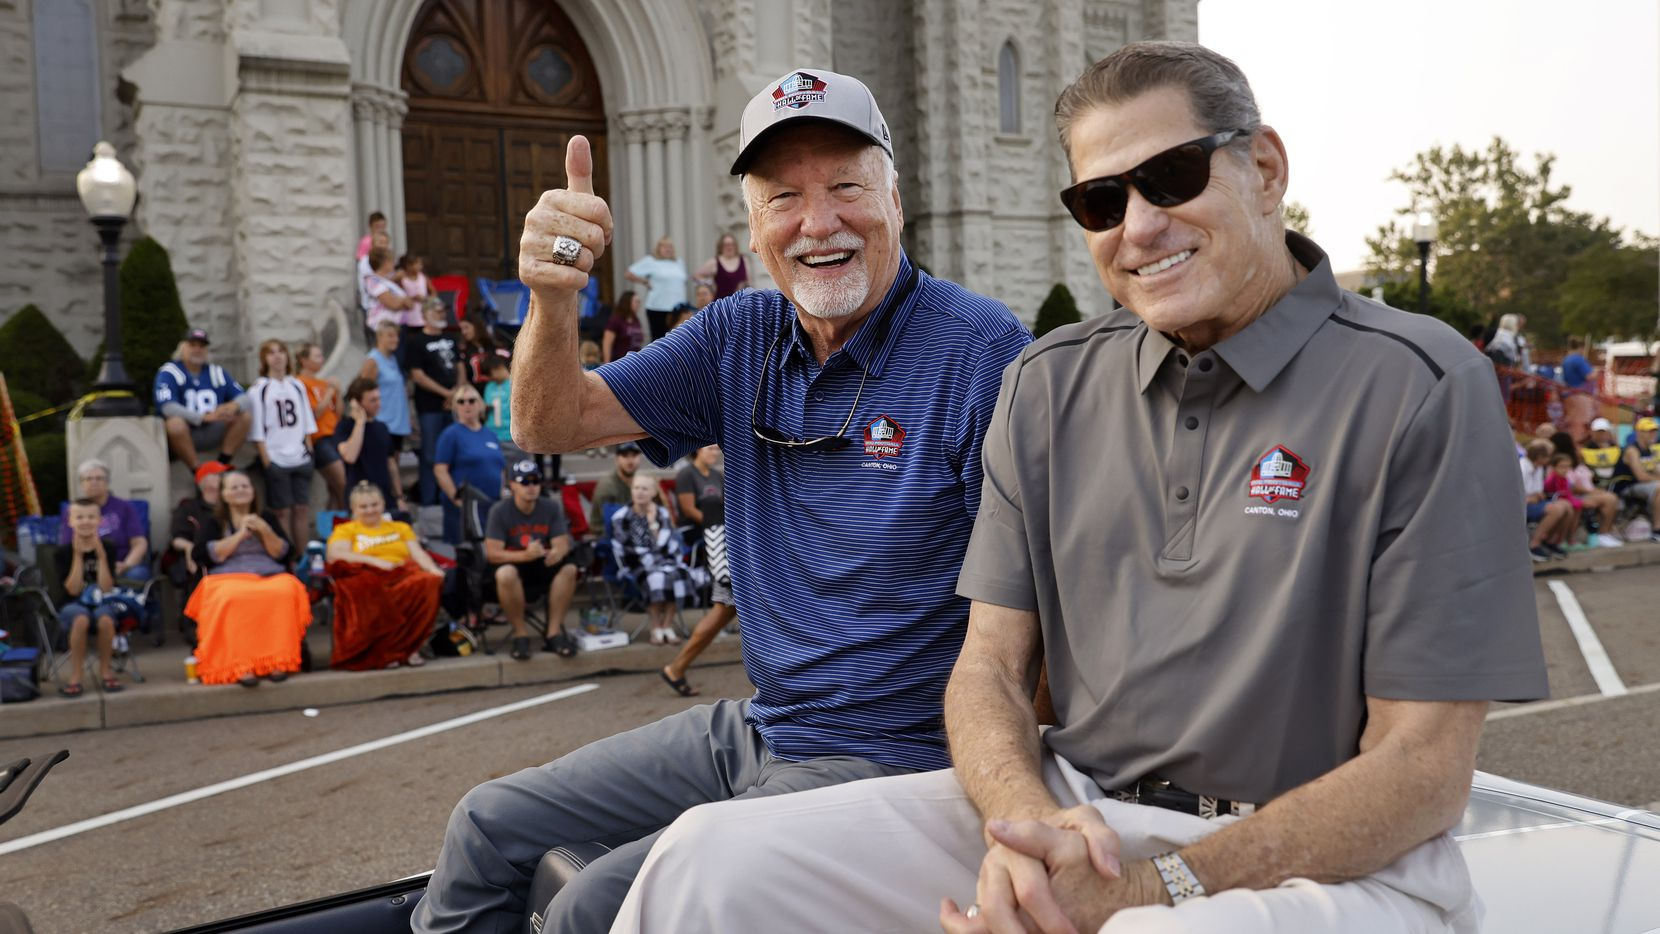 Dallas Cowboys Pro Football Hall of Fame inductee Cliff Harris (left) and former Cowboys safety Charlie Waters pose for a photo along the Canton Repository Grand Parade route in downtown Canton, Ohio, Saturday, August 7, 2021.